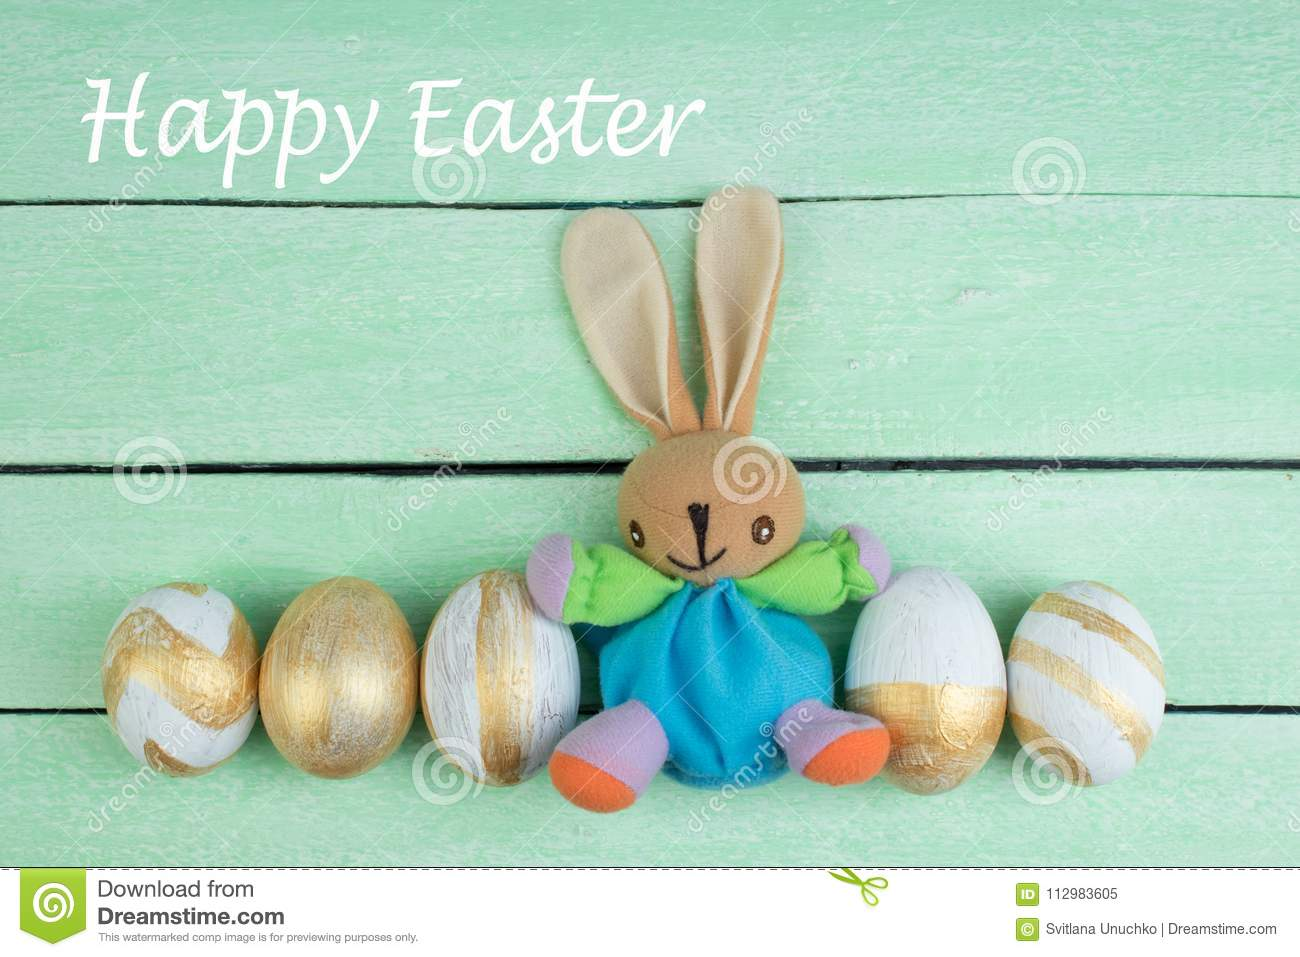 Happy Easter. Colorful easter eggs and rabbit on wooden background.